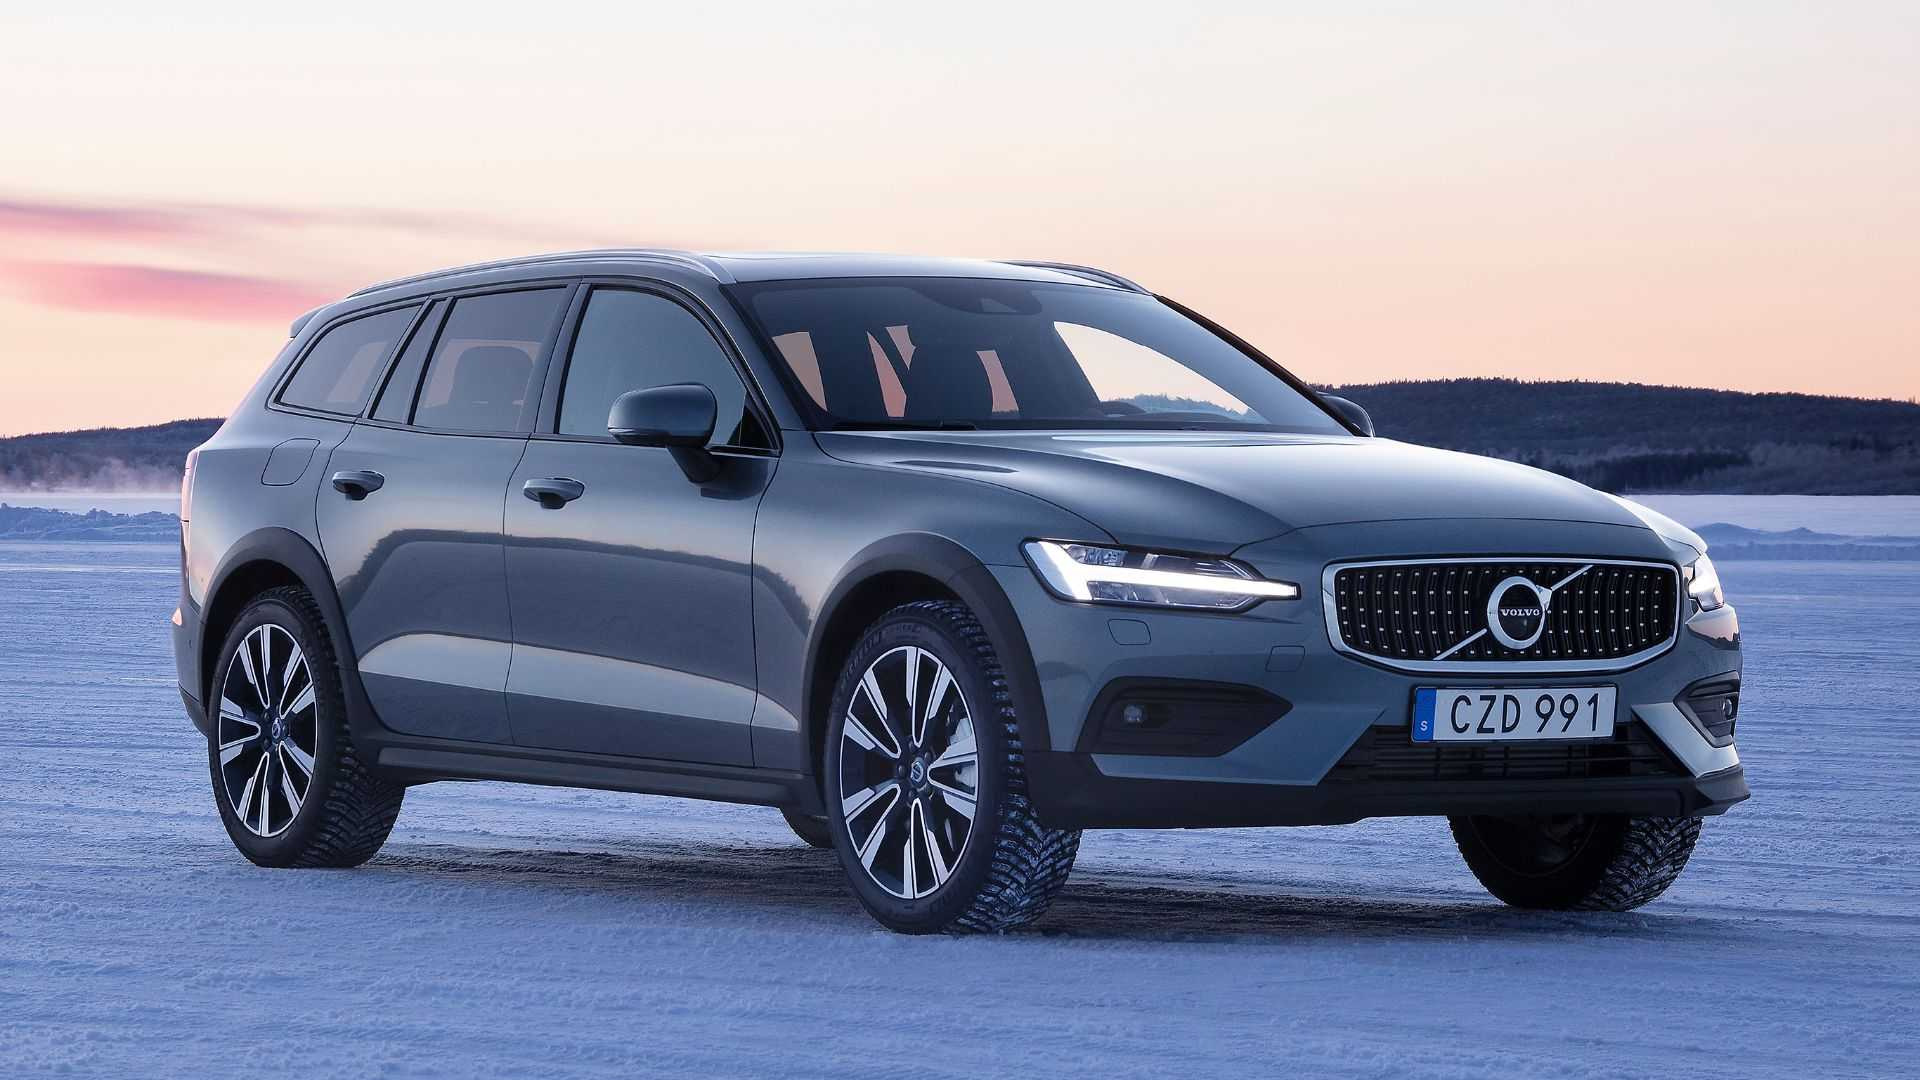 26 All New 2020 Volvo V60 Cross Country Prices for 2020 Volvo V60 Cross Country